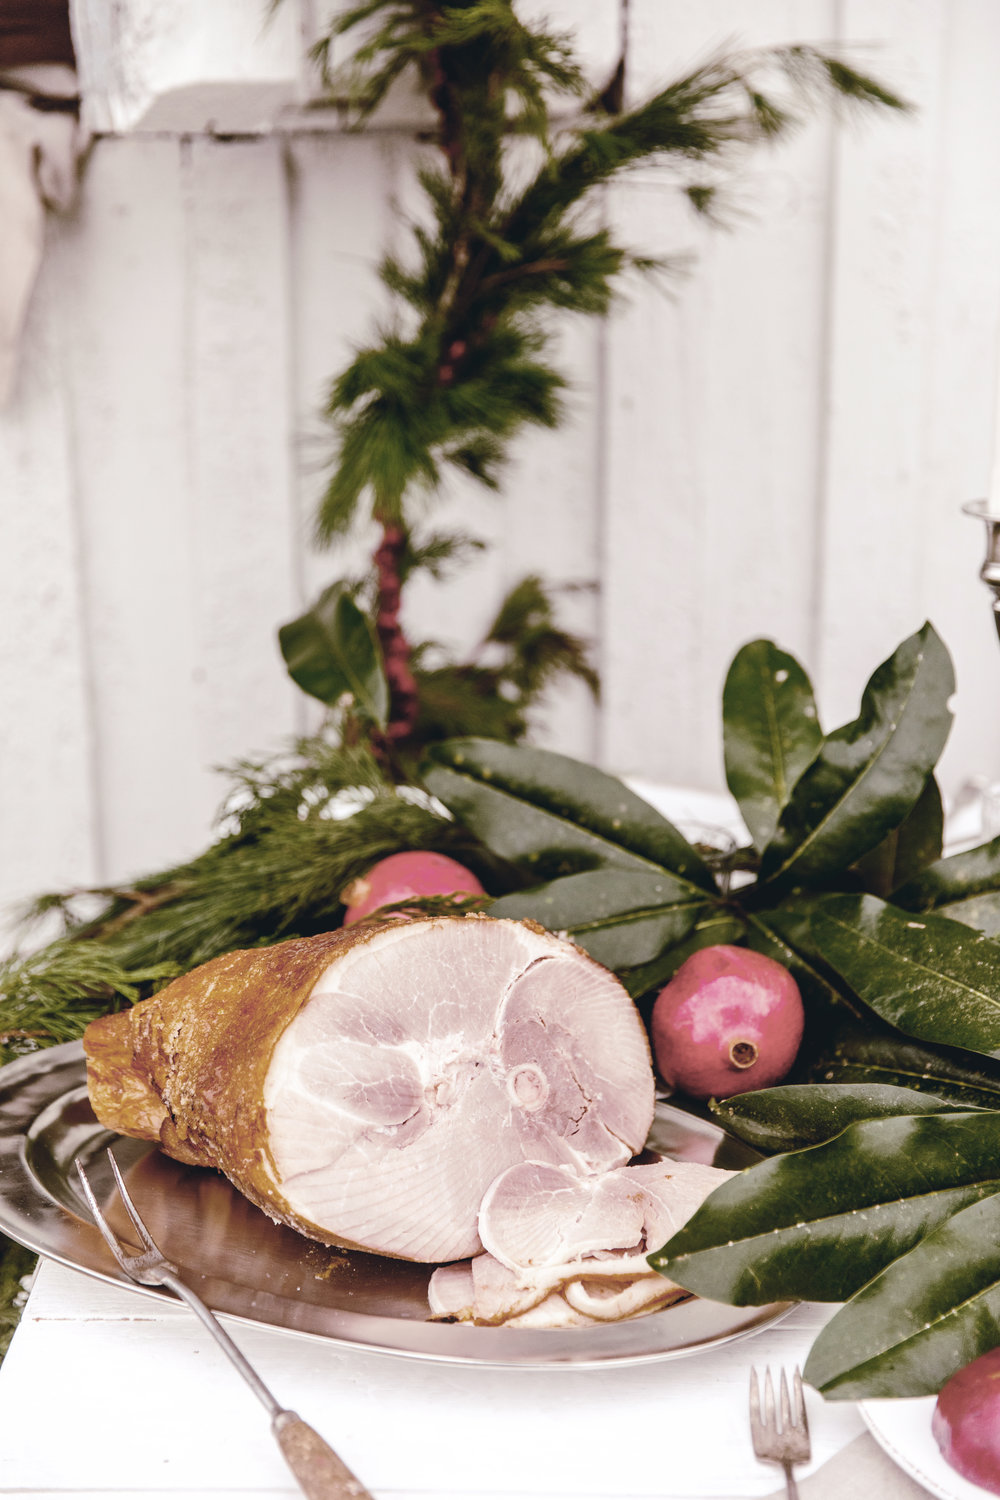 HoneyBaked Ham for rustic Christmas dinner /easy holiday entertaining / heirloomed